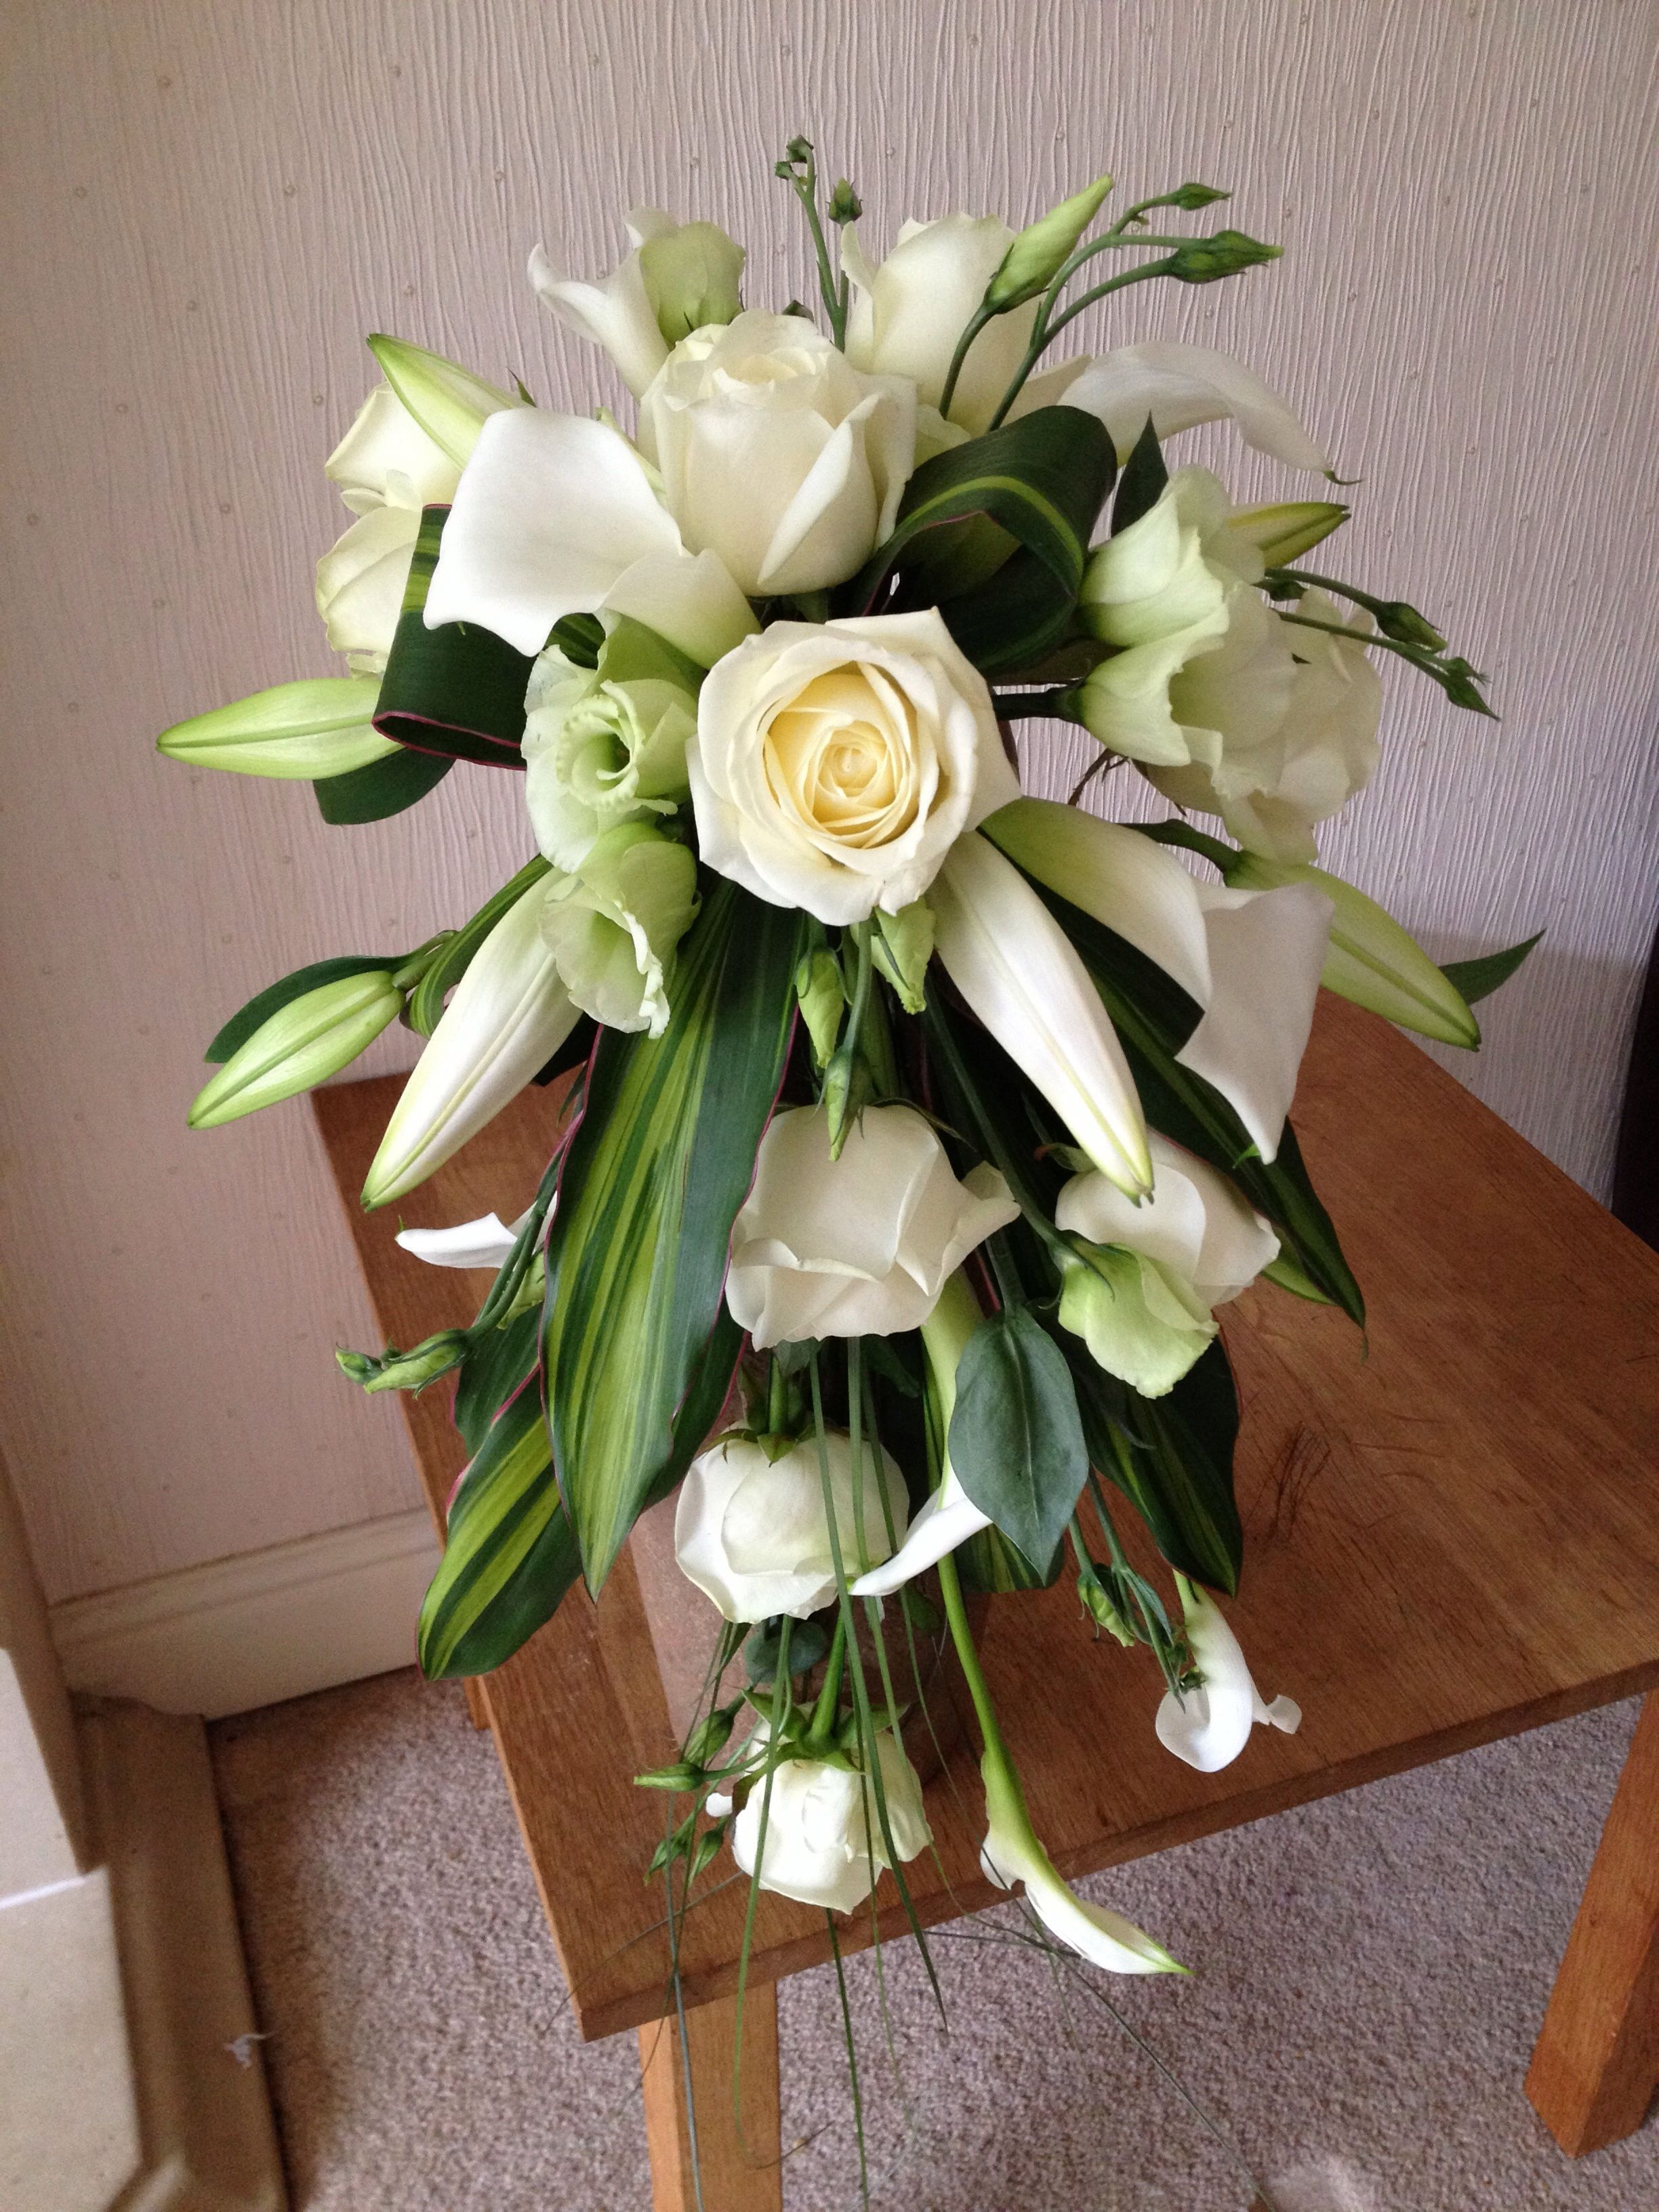 Brides shower bouquet avalanche roses calla lilies and oriental brides shower bouquet avalanche roses calla lilies and oriental lilies dhlflorist Choice Image